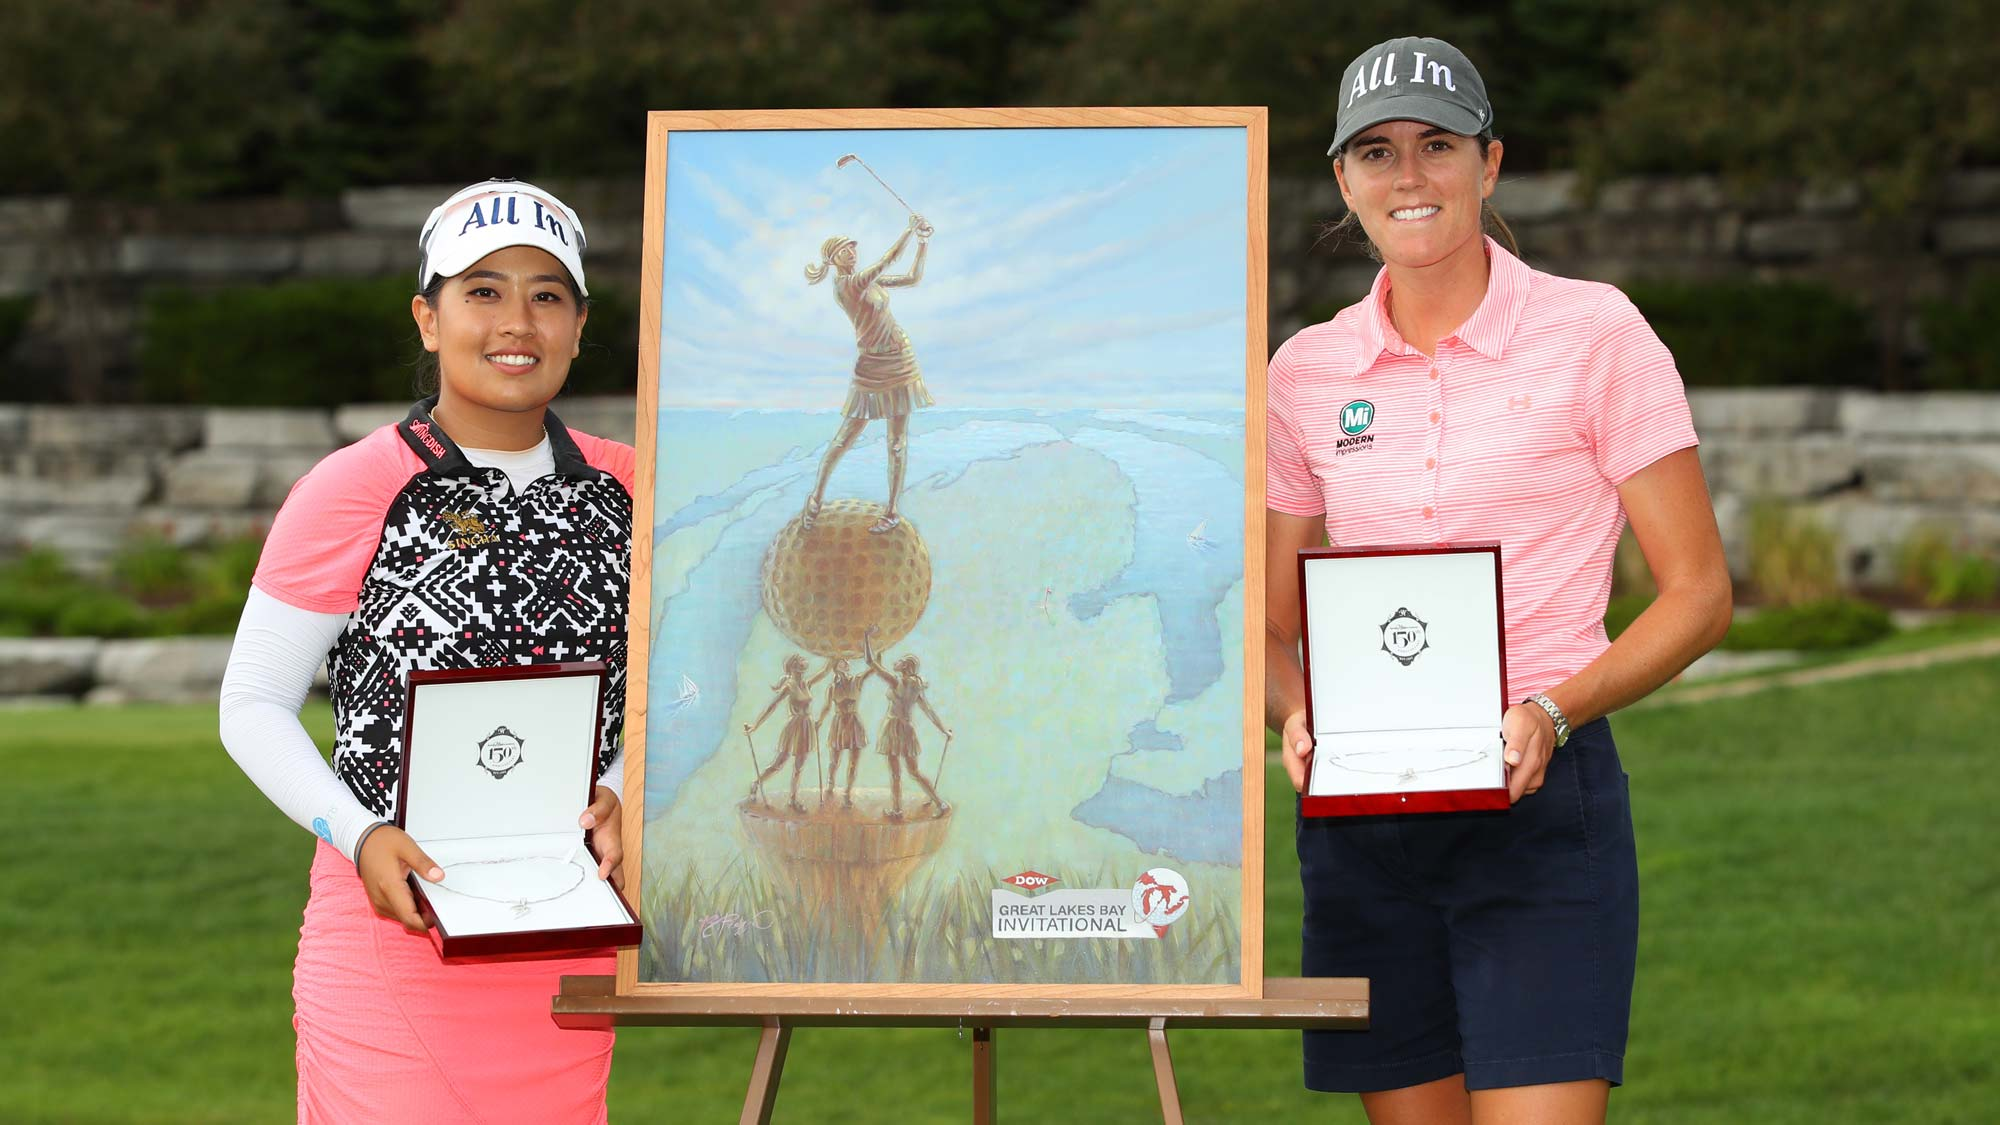 Teammates Cydney Clanton of the United States (R) and Jasmine Suwannapura of Thailand pose with the championship trophy and necklace after winning the Dow Great Lakes Bay Invitational